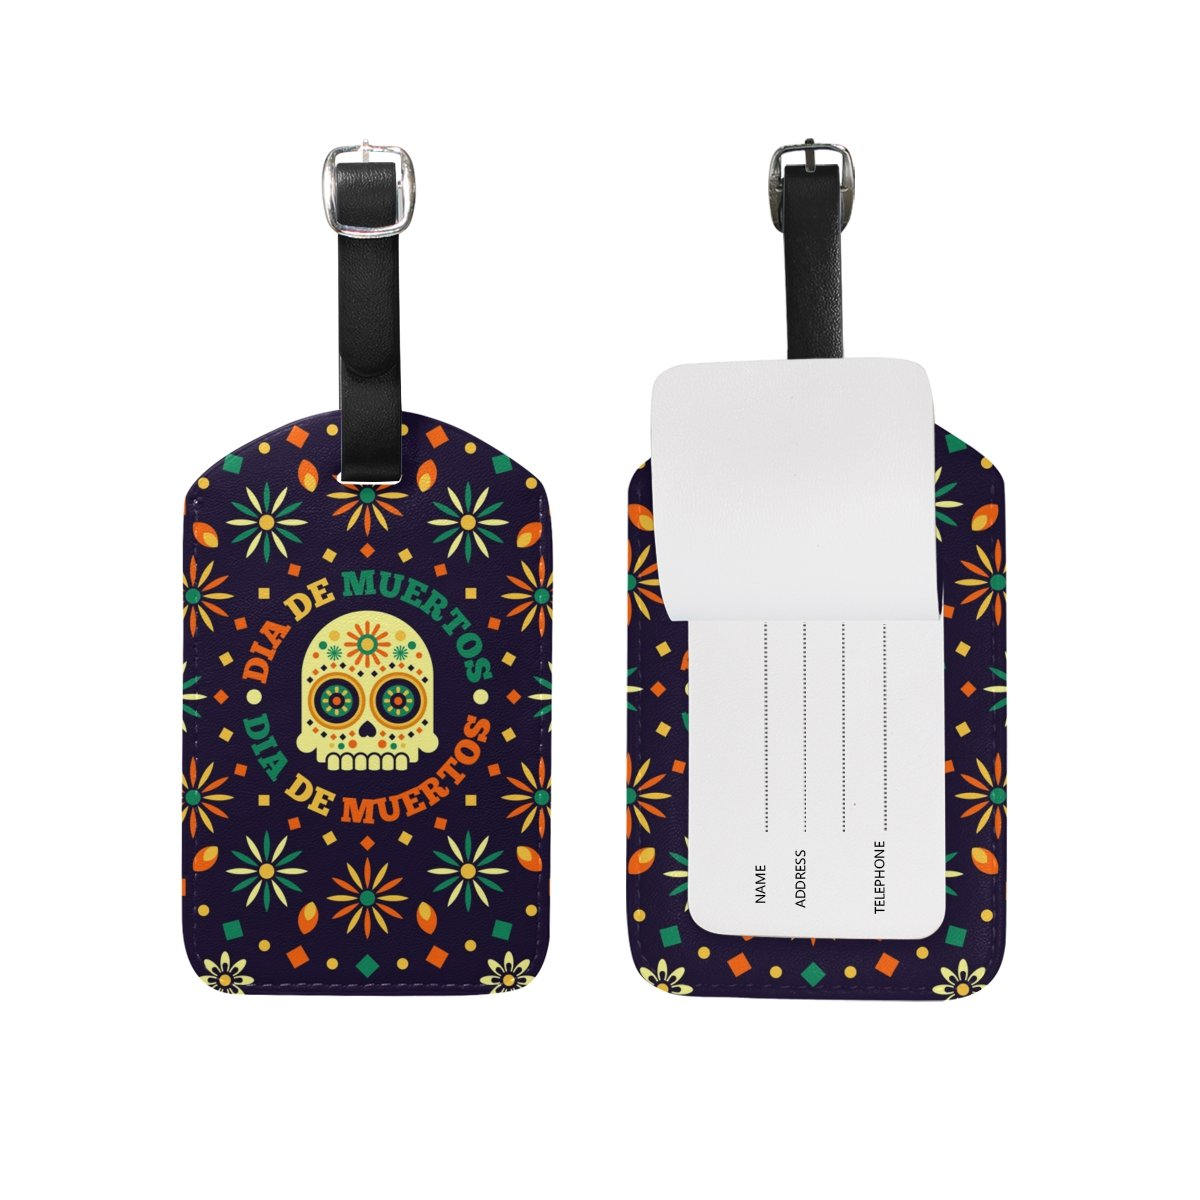 Saobao Travel Luggage Tag Skull And Flower PU Leather Baggage Travel ID